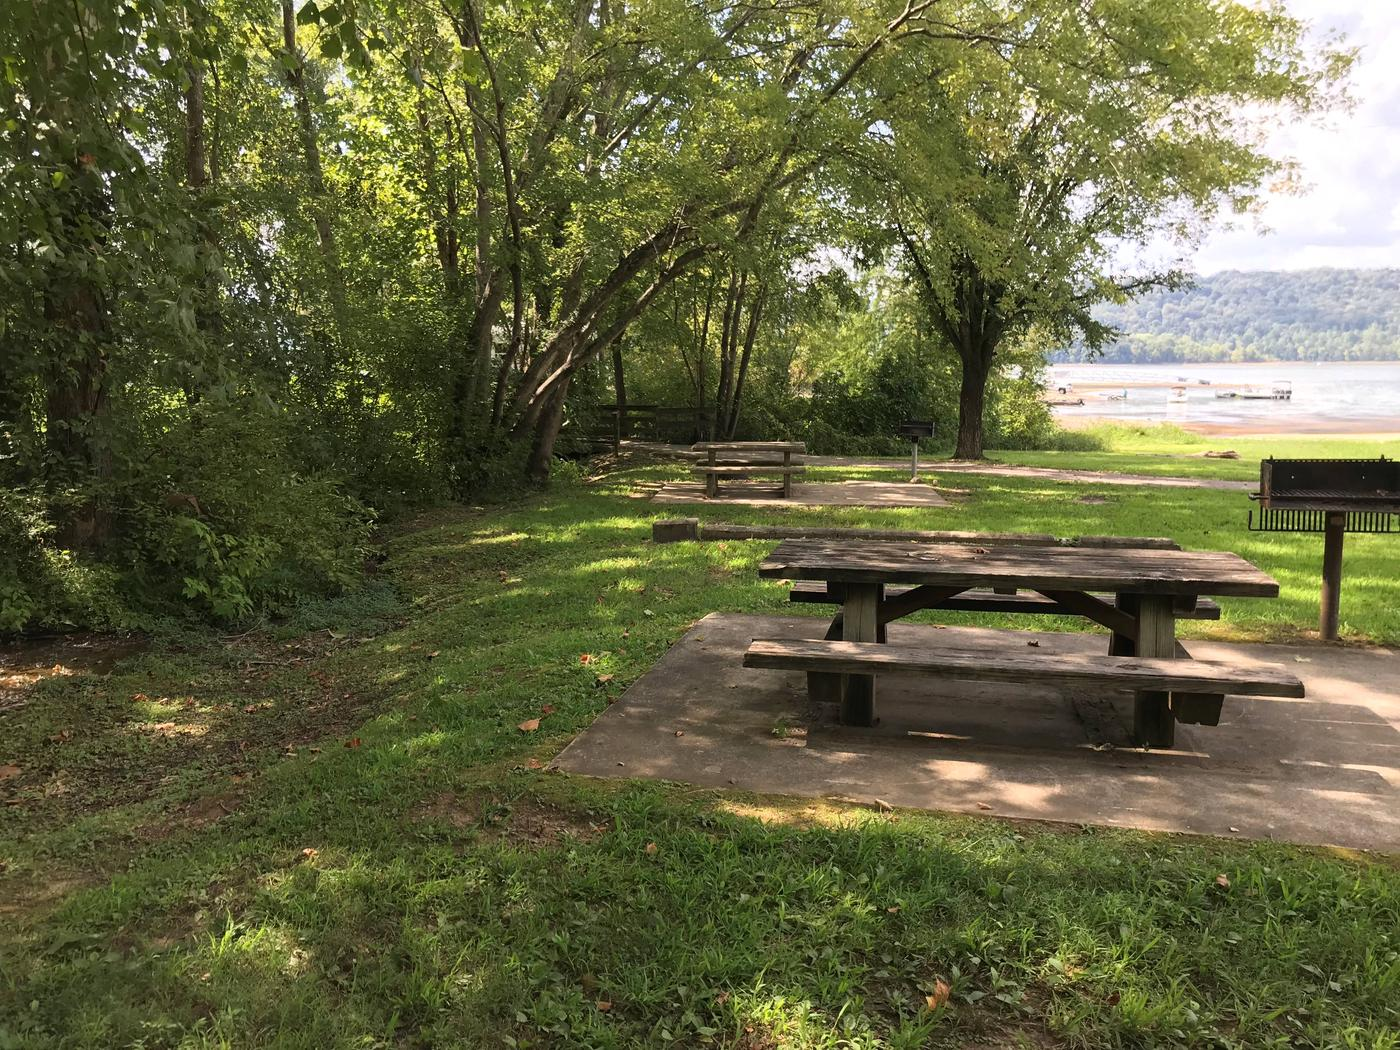 OBEY RIVER PARK SITE #51 LAKE VIEWOBEY RIVER PARK SITE #51